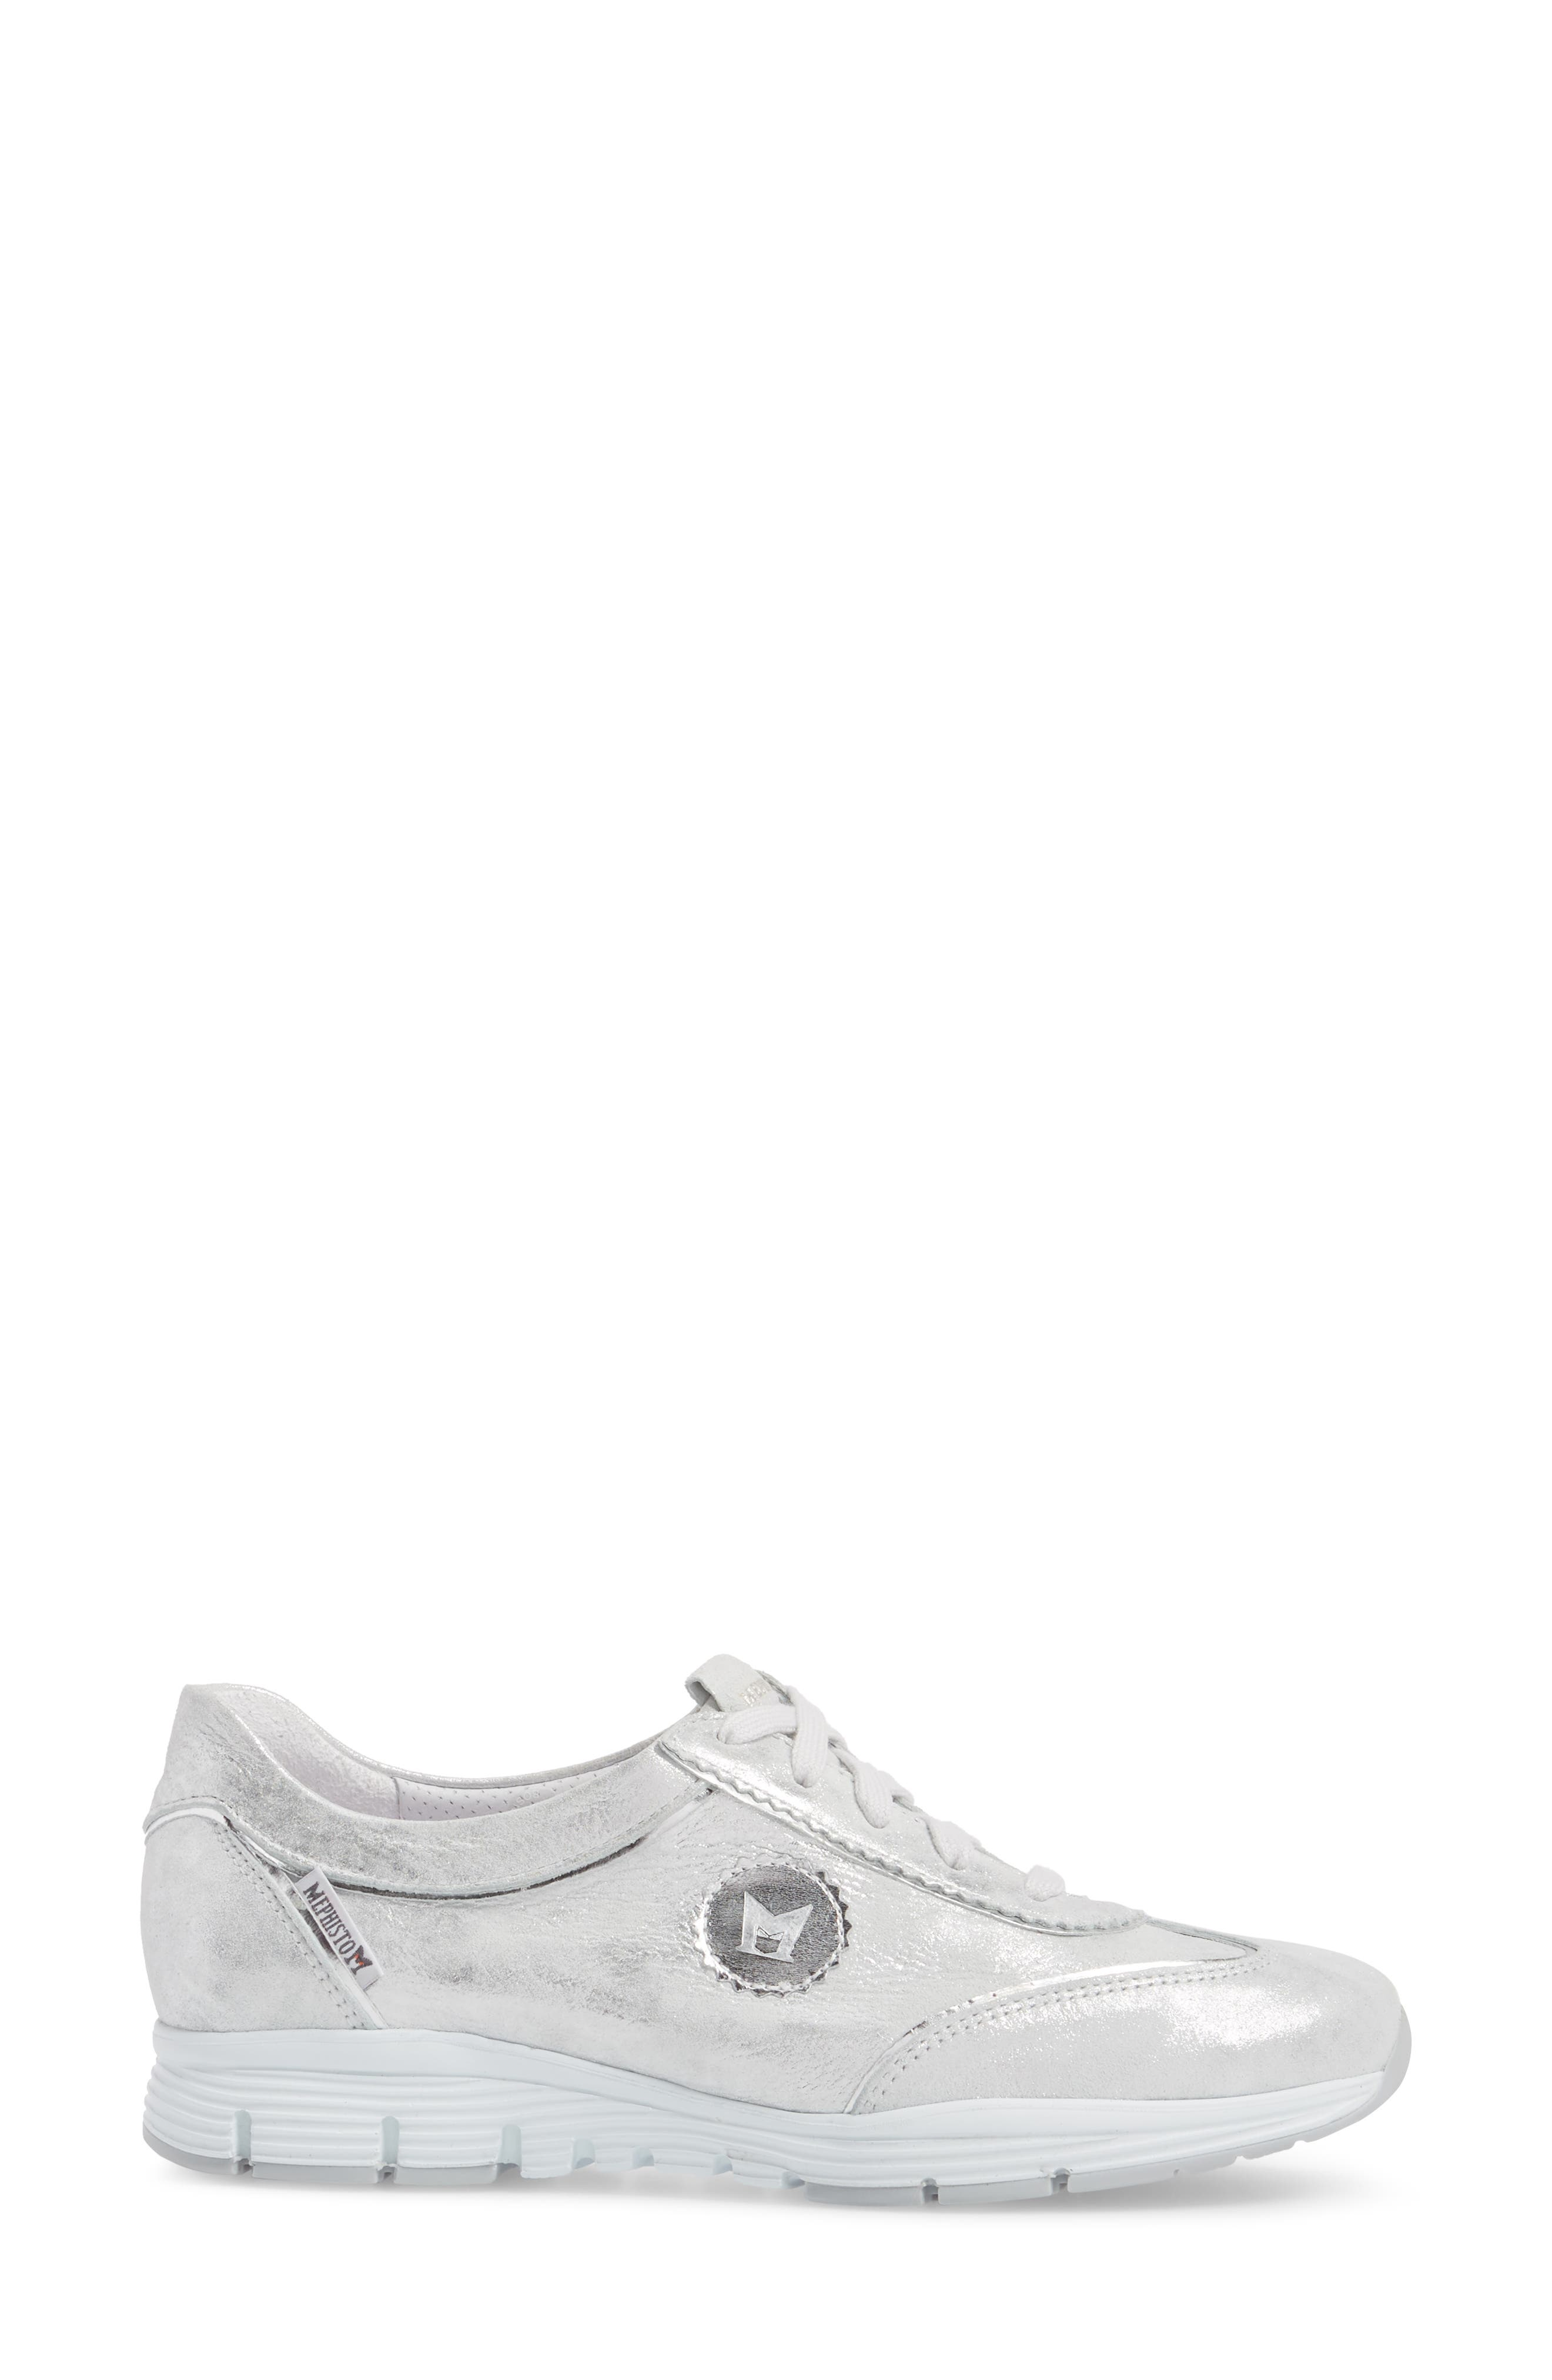 'Yael' Soft-Air Sneaker,                             Alternate thumbnail 3, color,                             Silver Leather